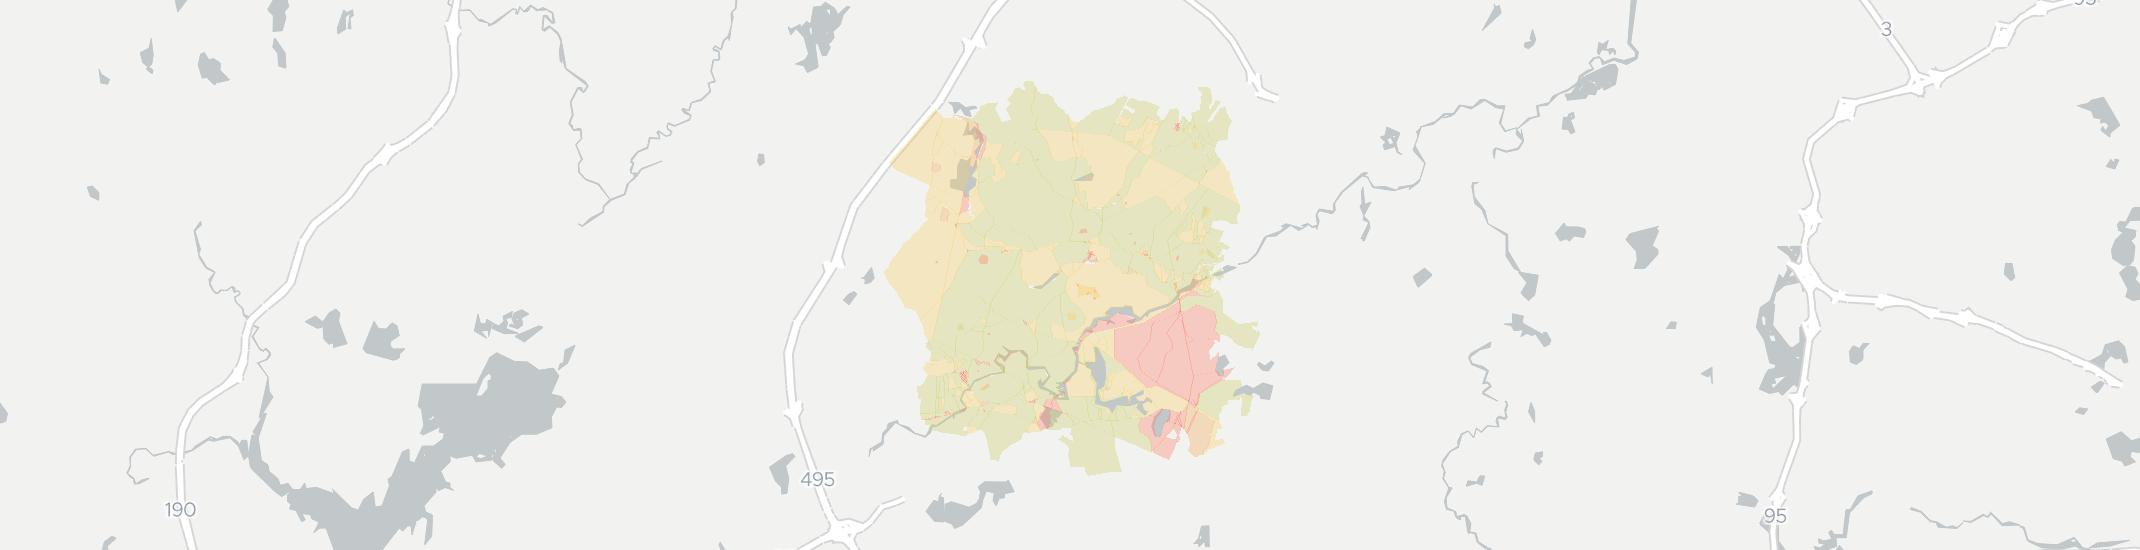 Stow Internet Competition Map. Click for interactive map.